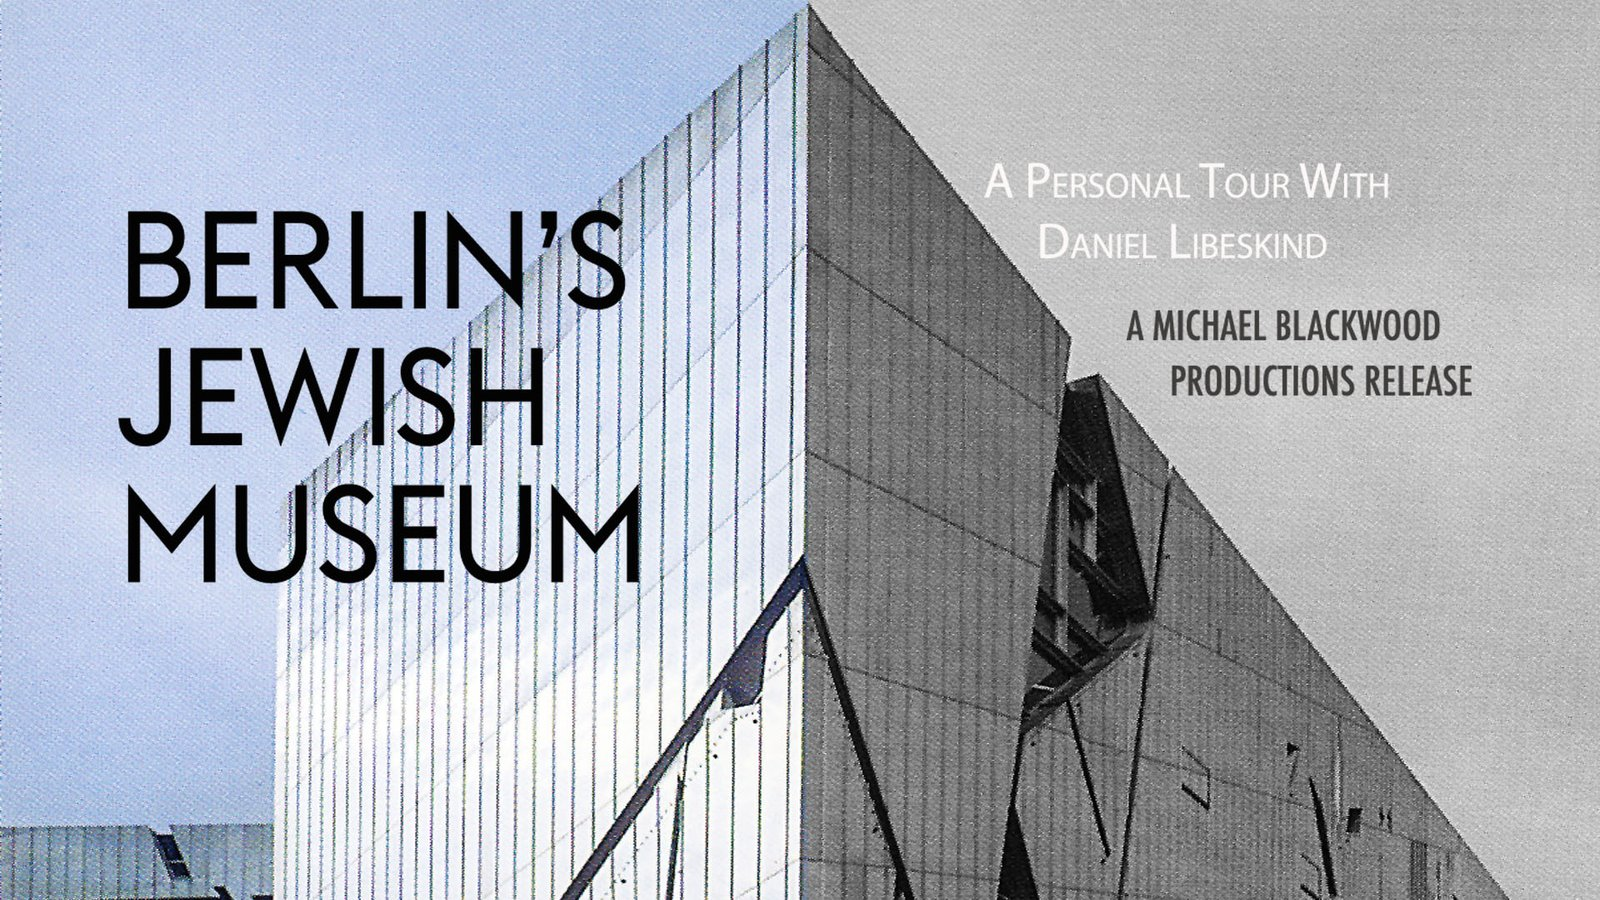 Berlin's Jewish Museum - A Personal Tour With Daniel Libeskind